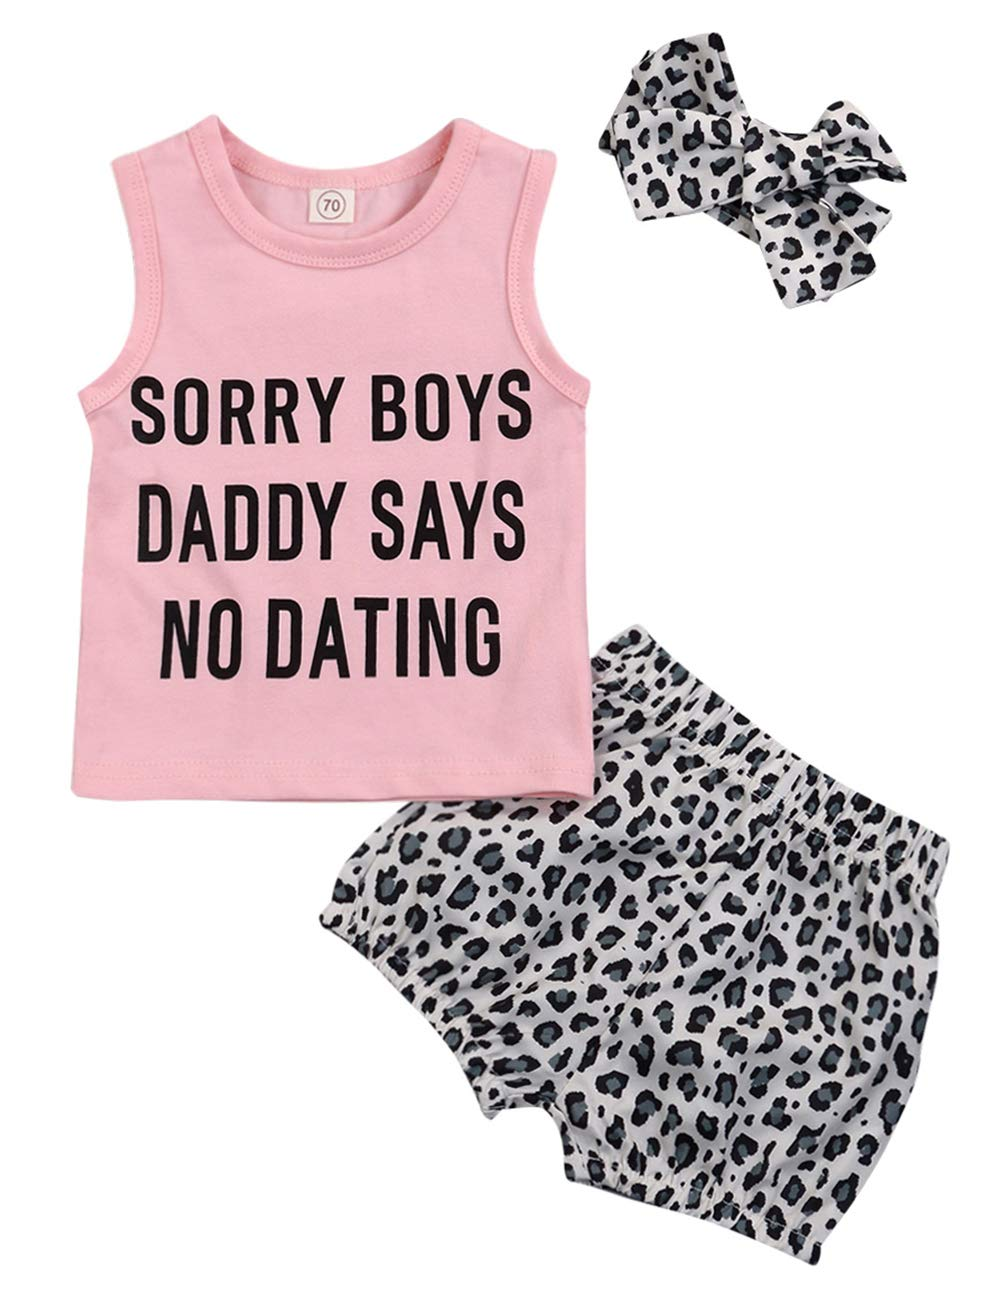 Baby Toddler Girls Funny Letter Print Matching Outfits Sleeveless Top Leopard Pants with Headband Clothes Set